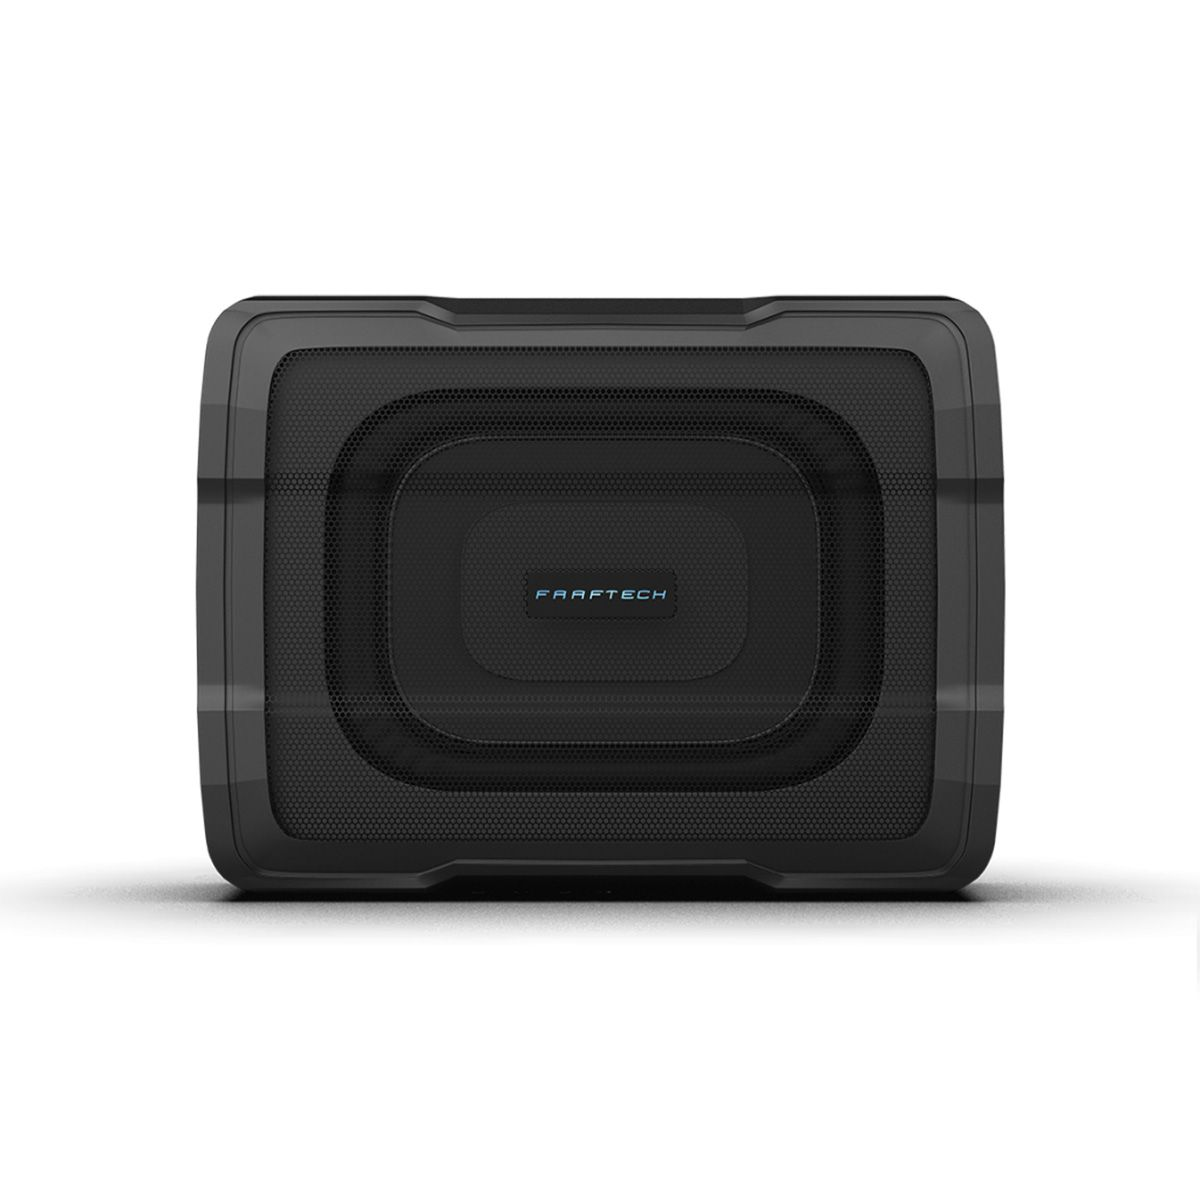 Subwoofer Ativo Plug and Play 100W RMS Toyota Corolla Cross FT-SW68 TY2 Faaftech